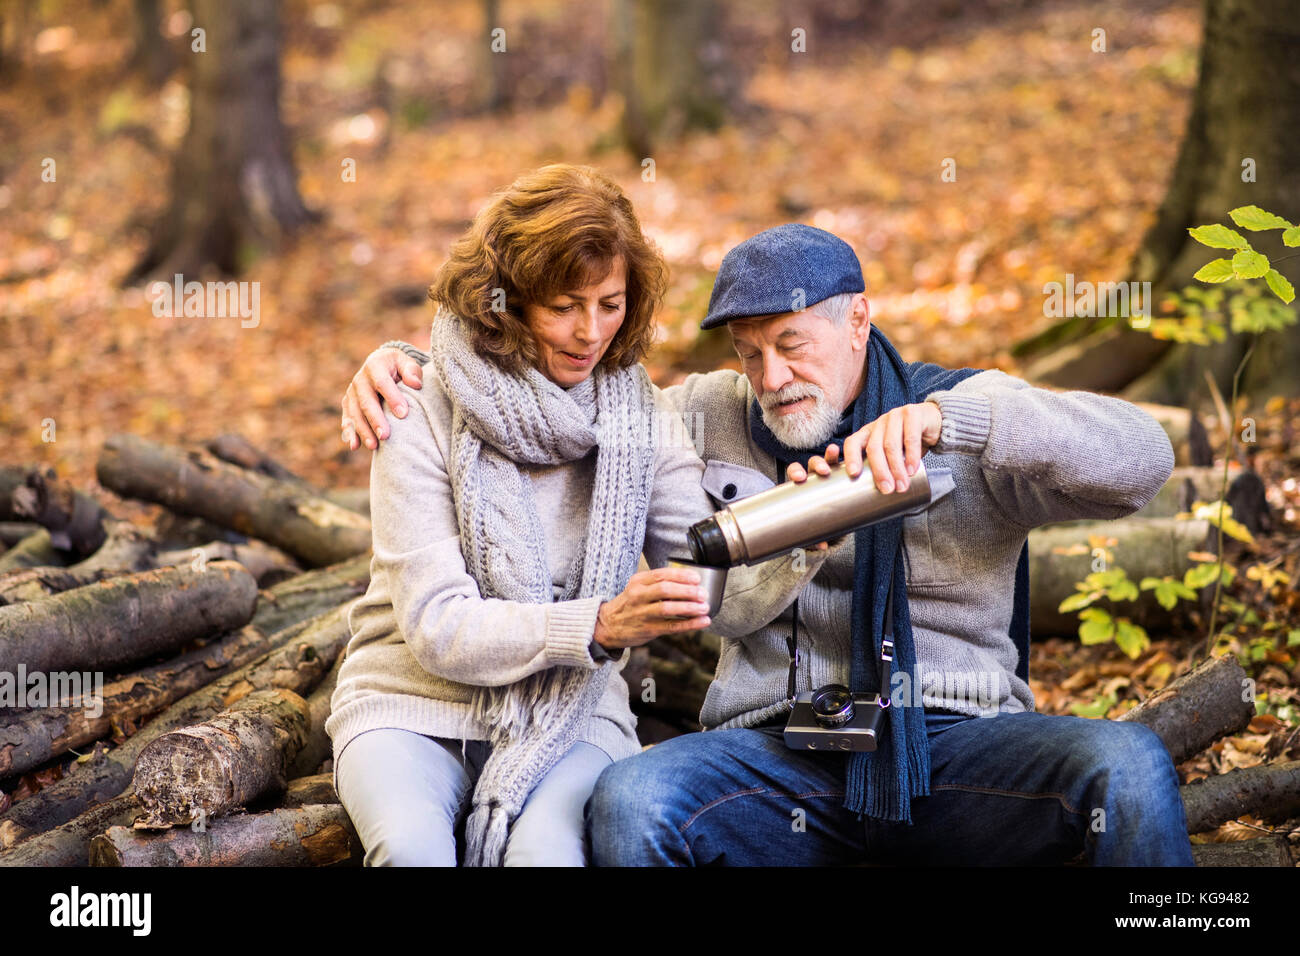 Senior couple on a walk in autumn forest. - Stock Image